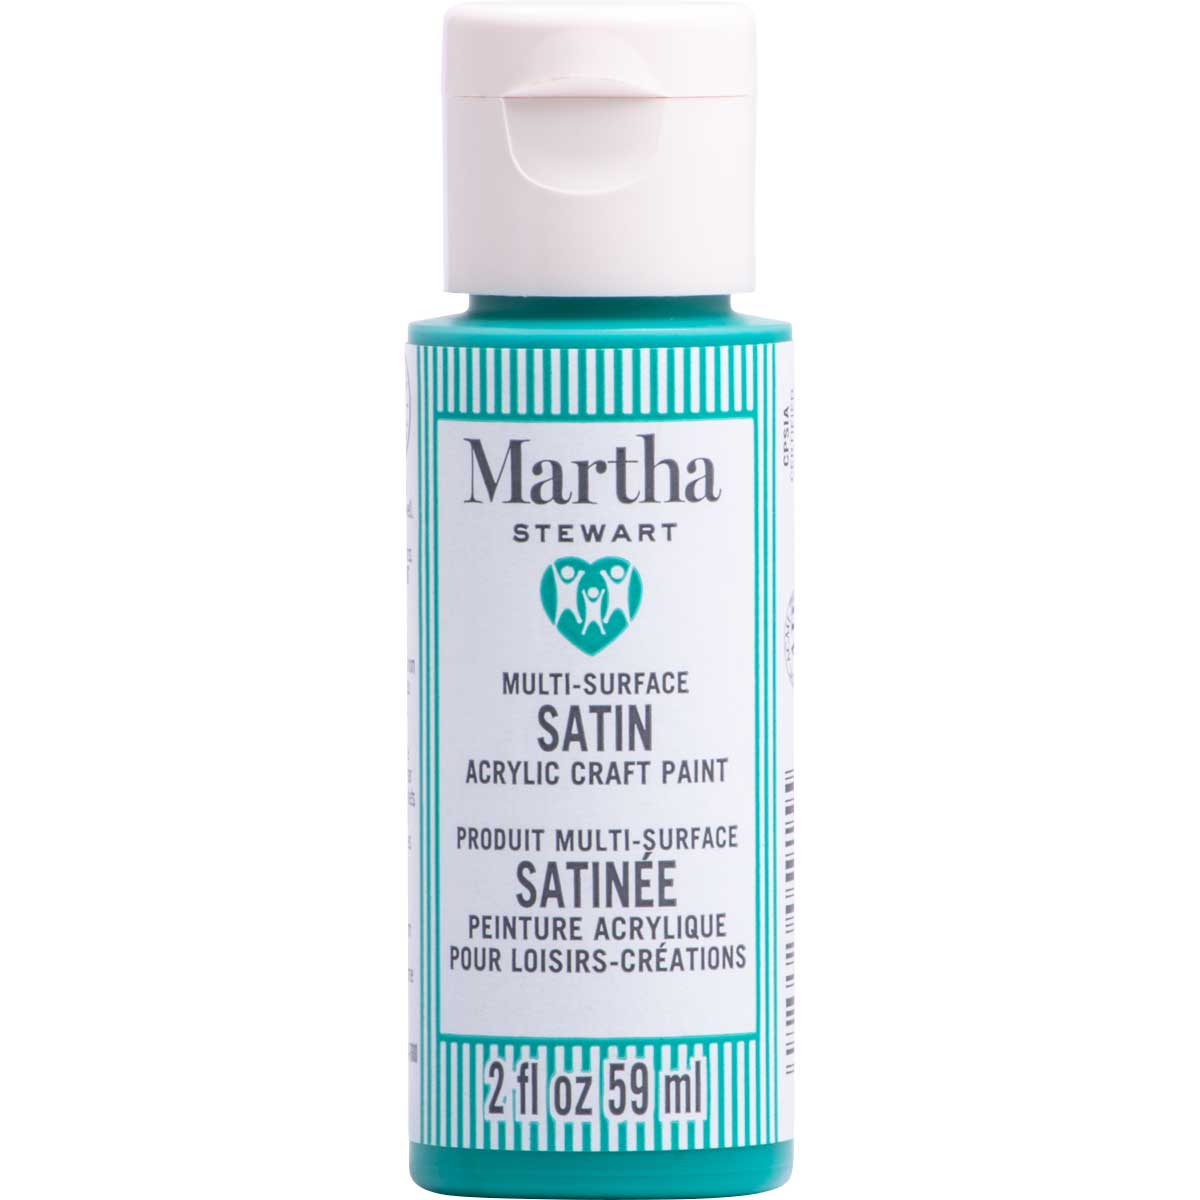 Martha Stewart ® Multi-Surface Satin Acrylic Craft Paint CPSIA - Jungle Green, 2 oz. - 5915